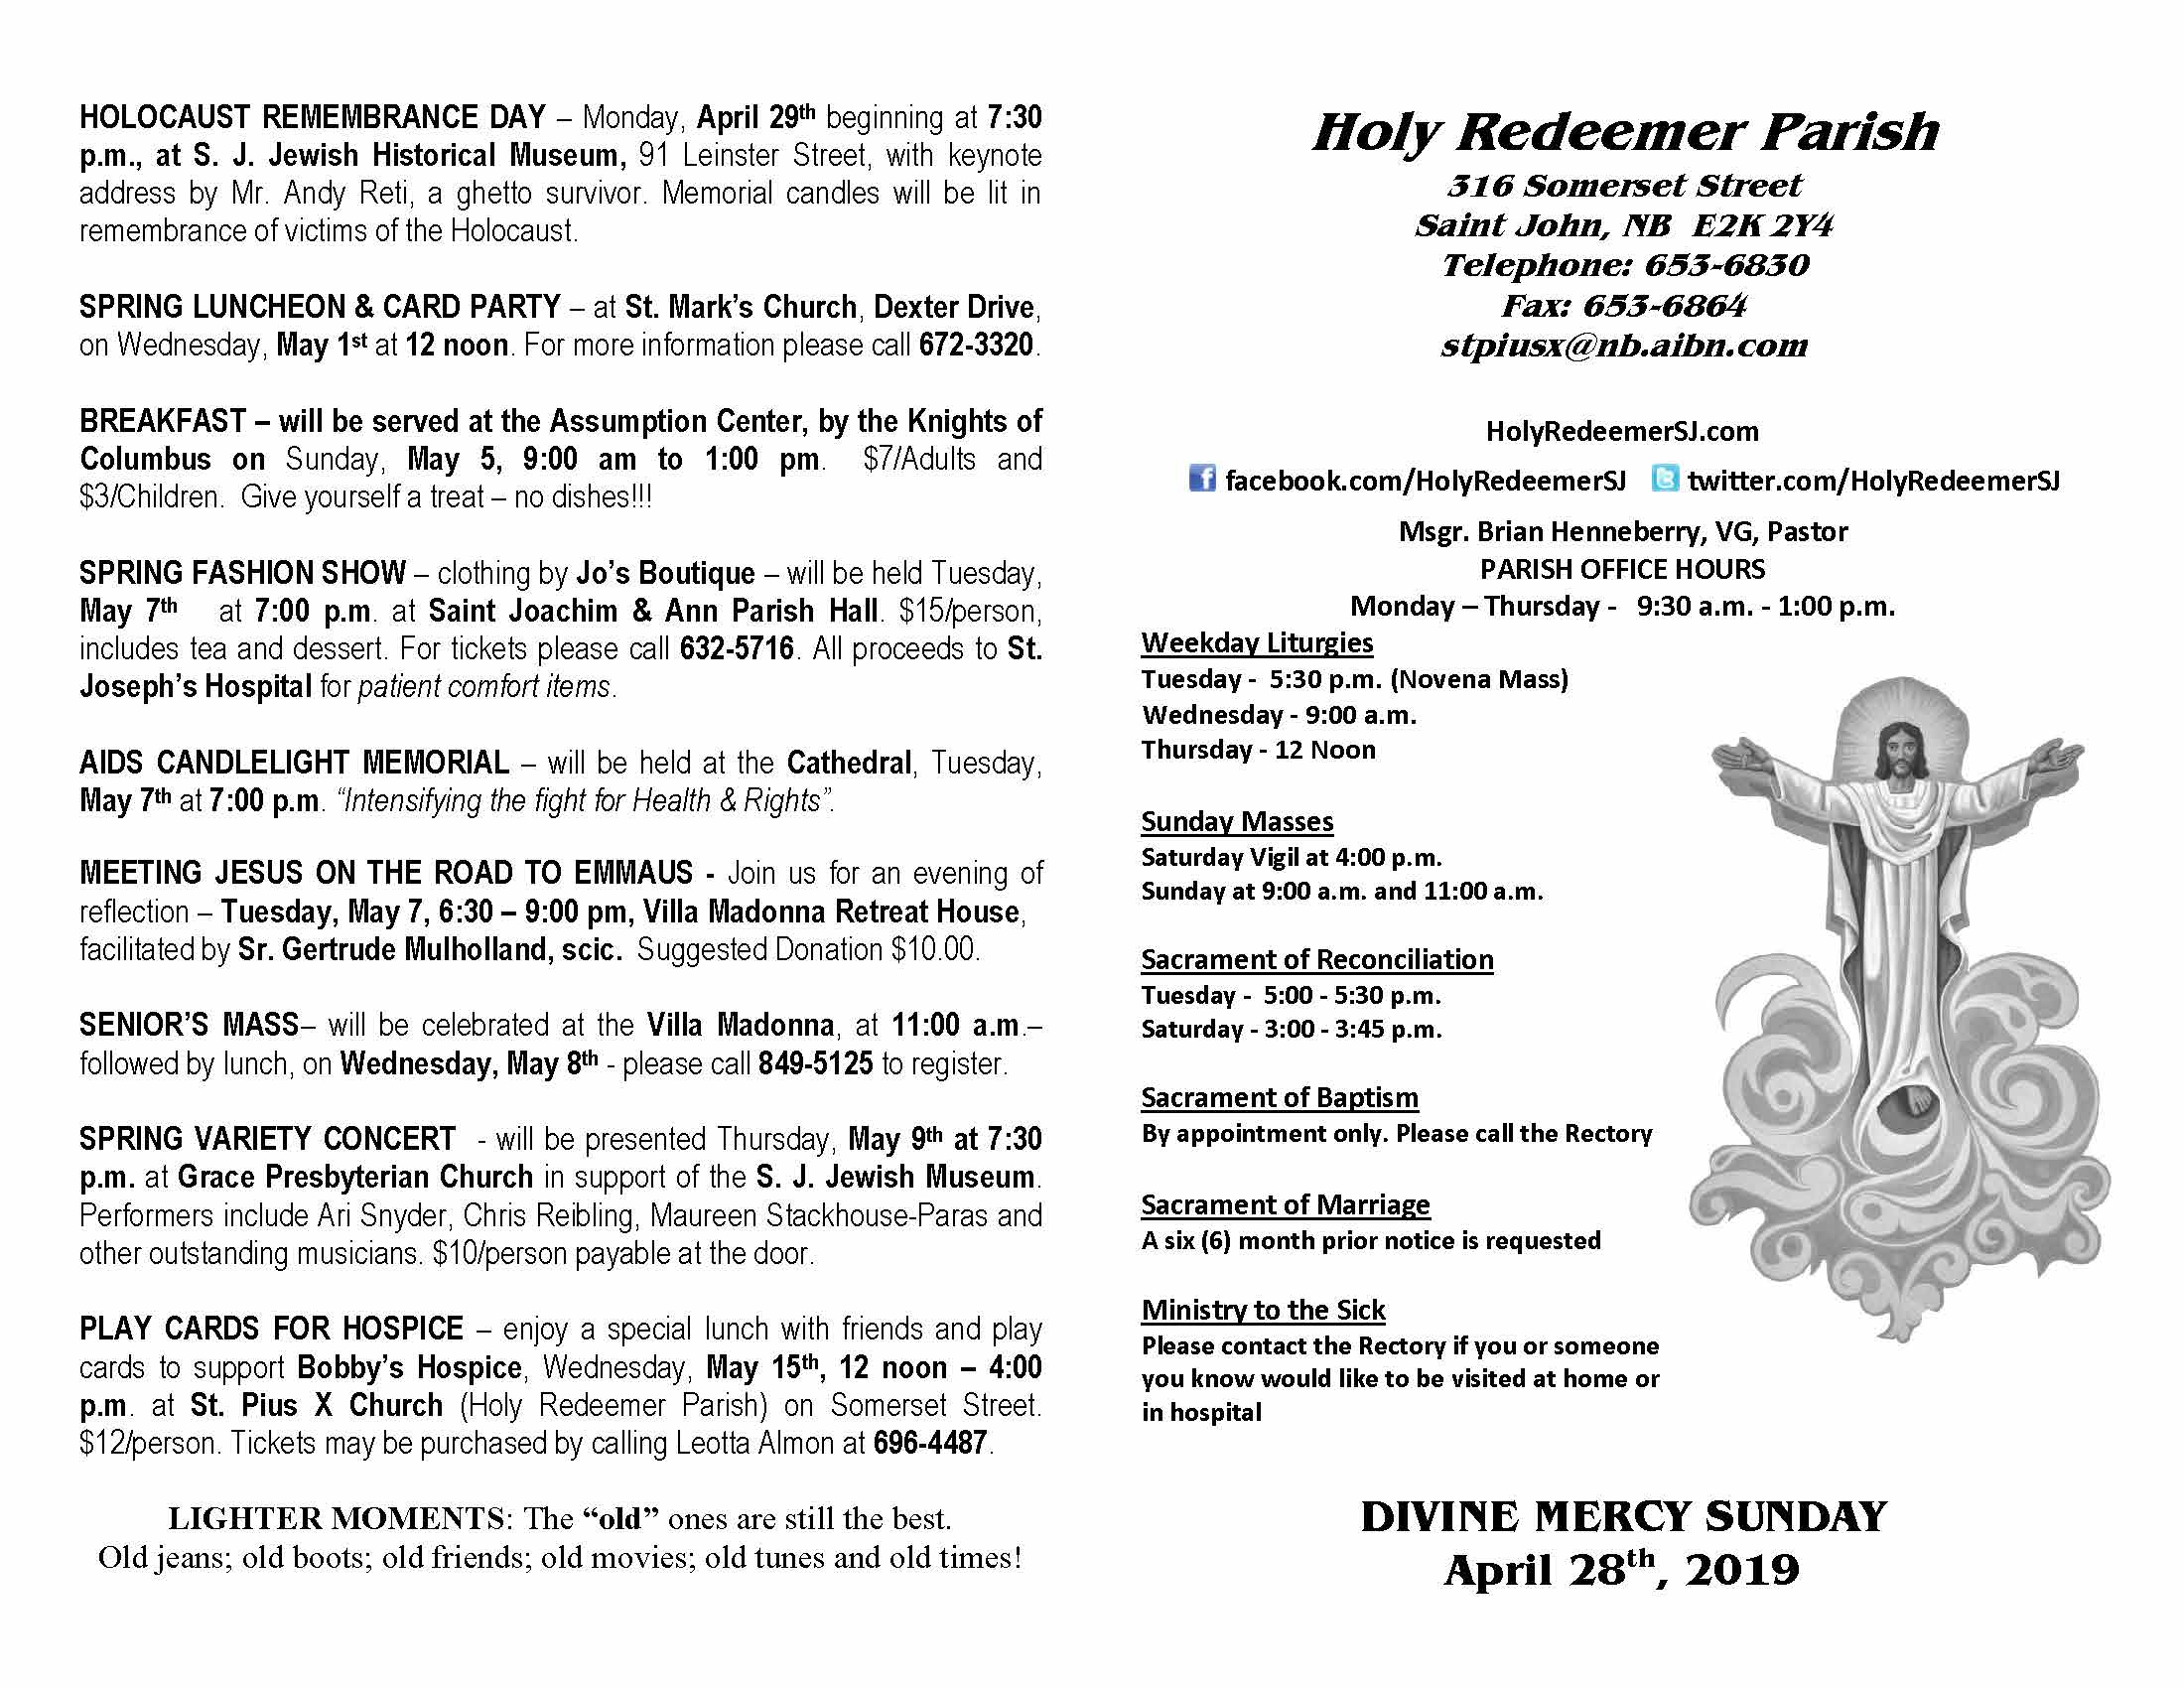 April 28 Bulletin – Holy Redeemer